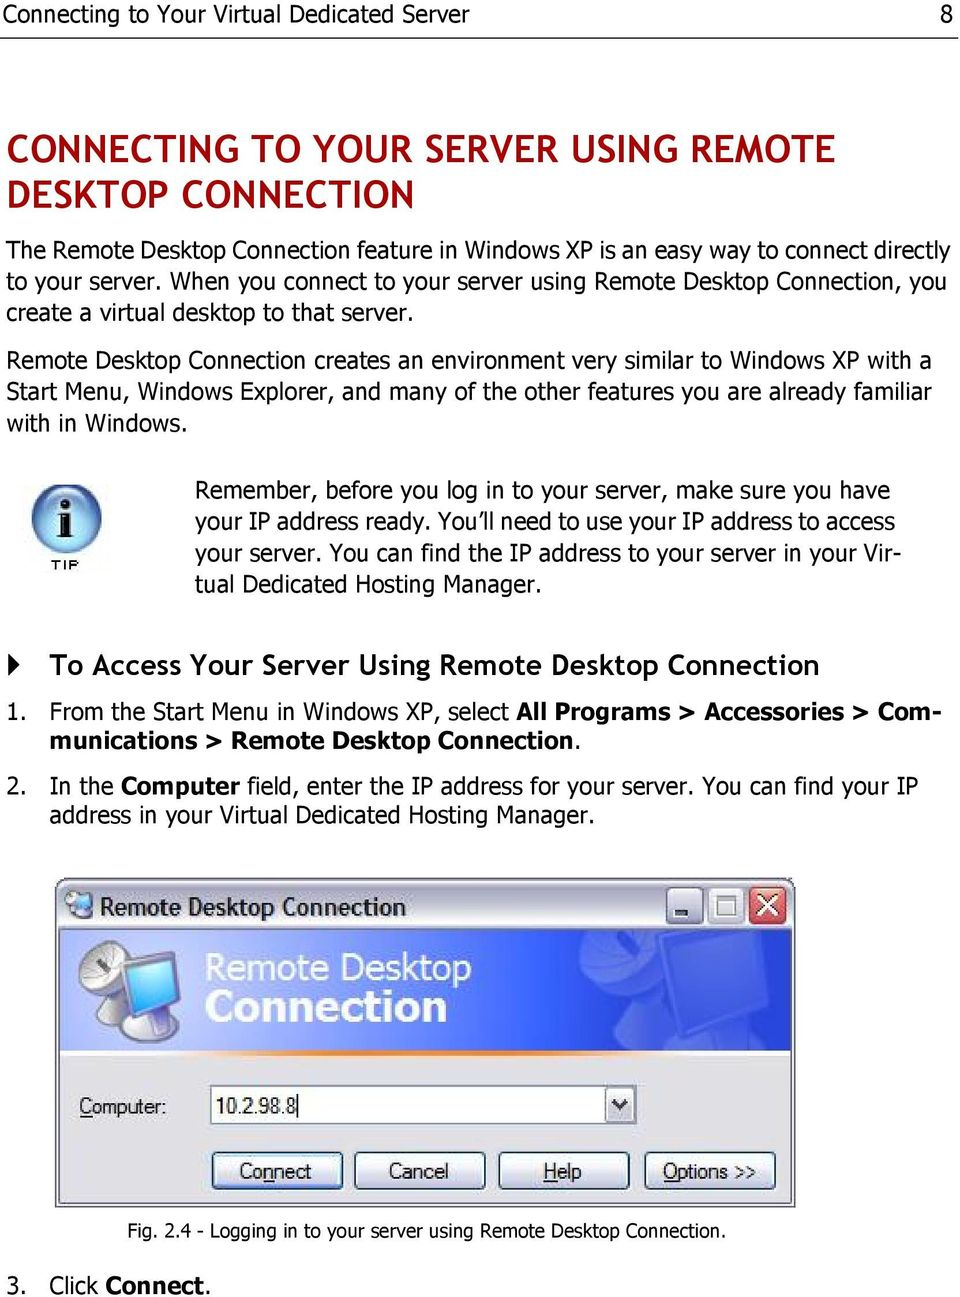 Remote Desktop Connection creates an environment very similar to Windows XP with a Start Menu, Windows Explorer, and many of the other features you are already familiar with in Windows.